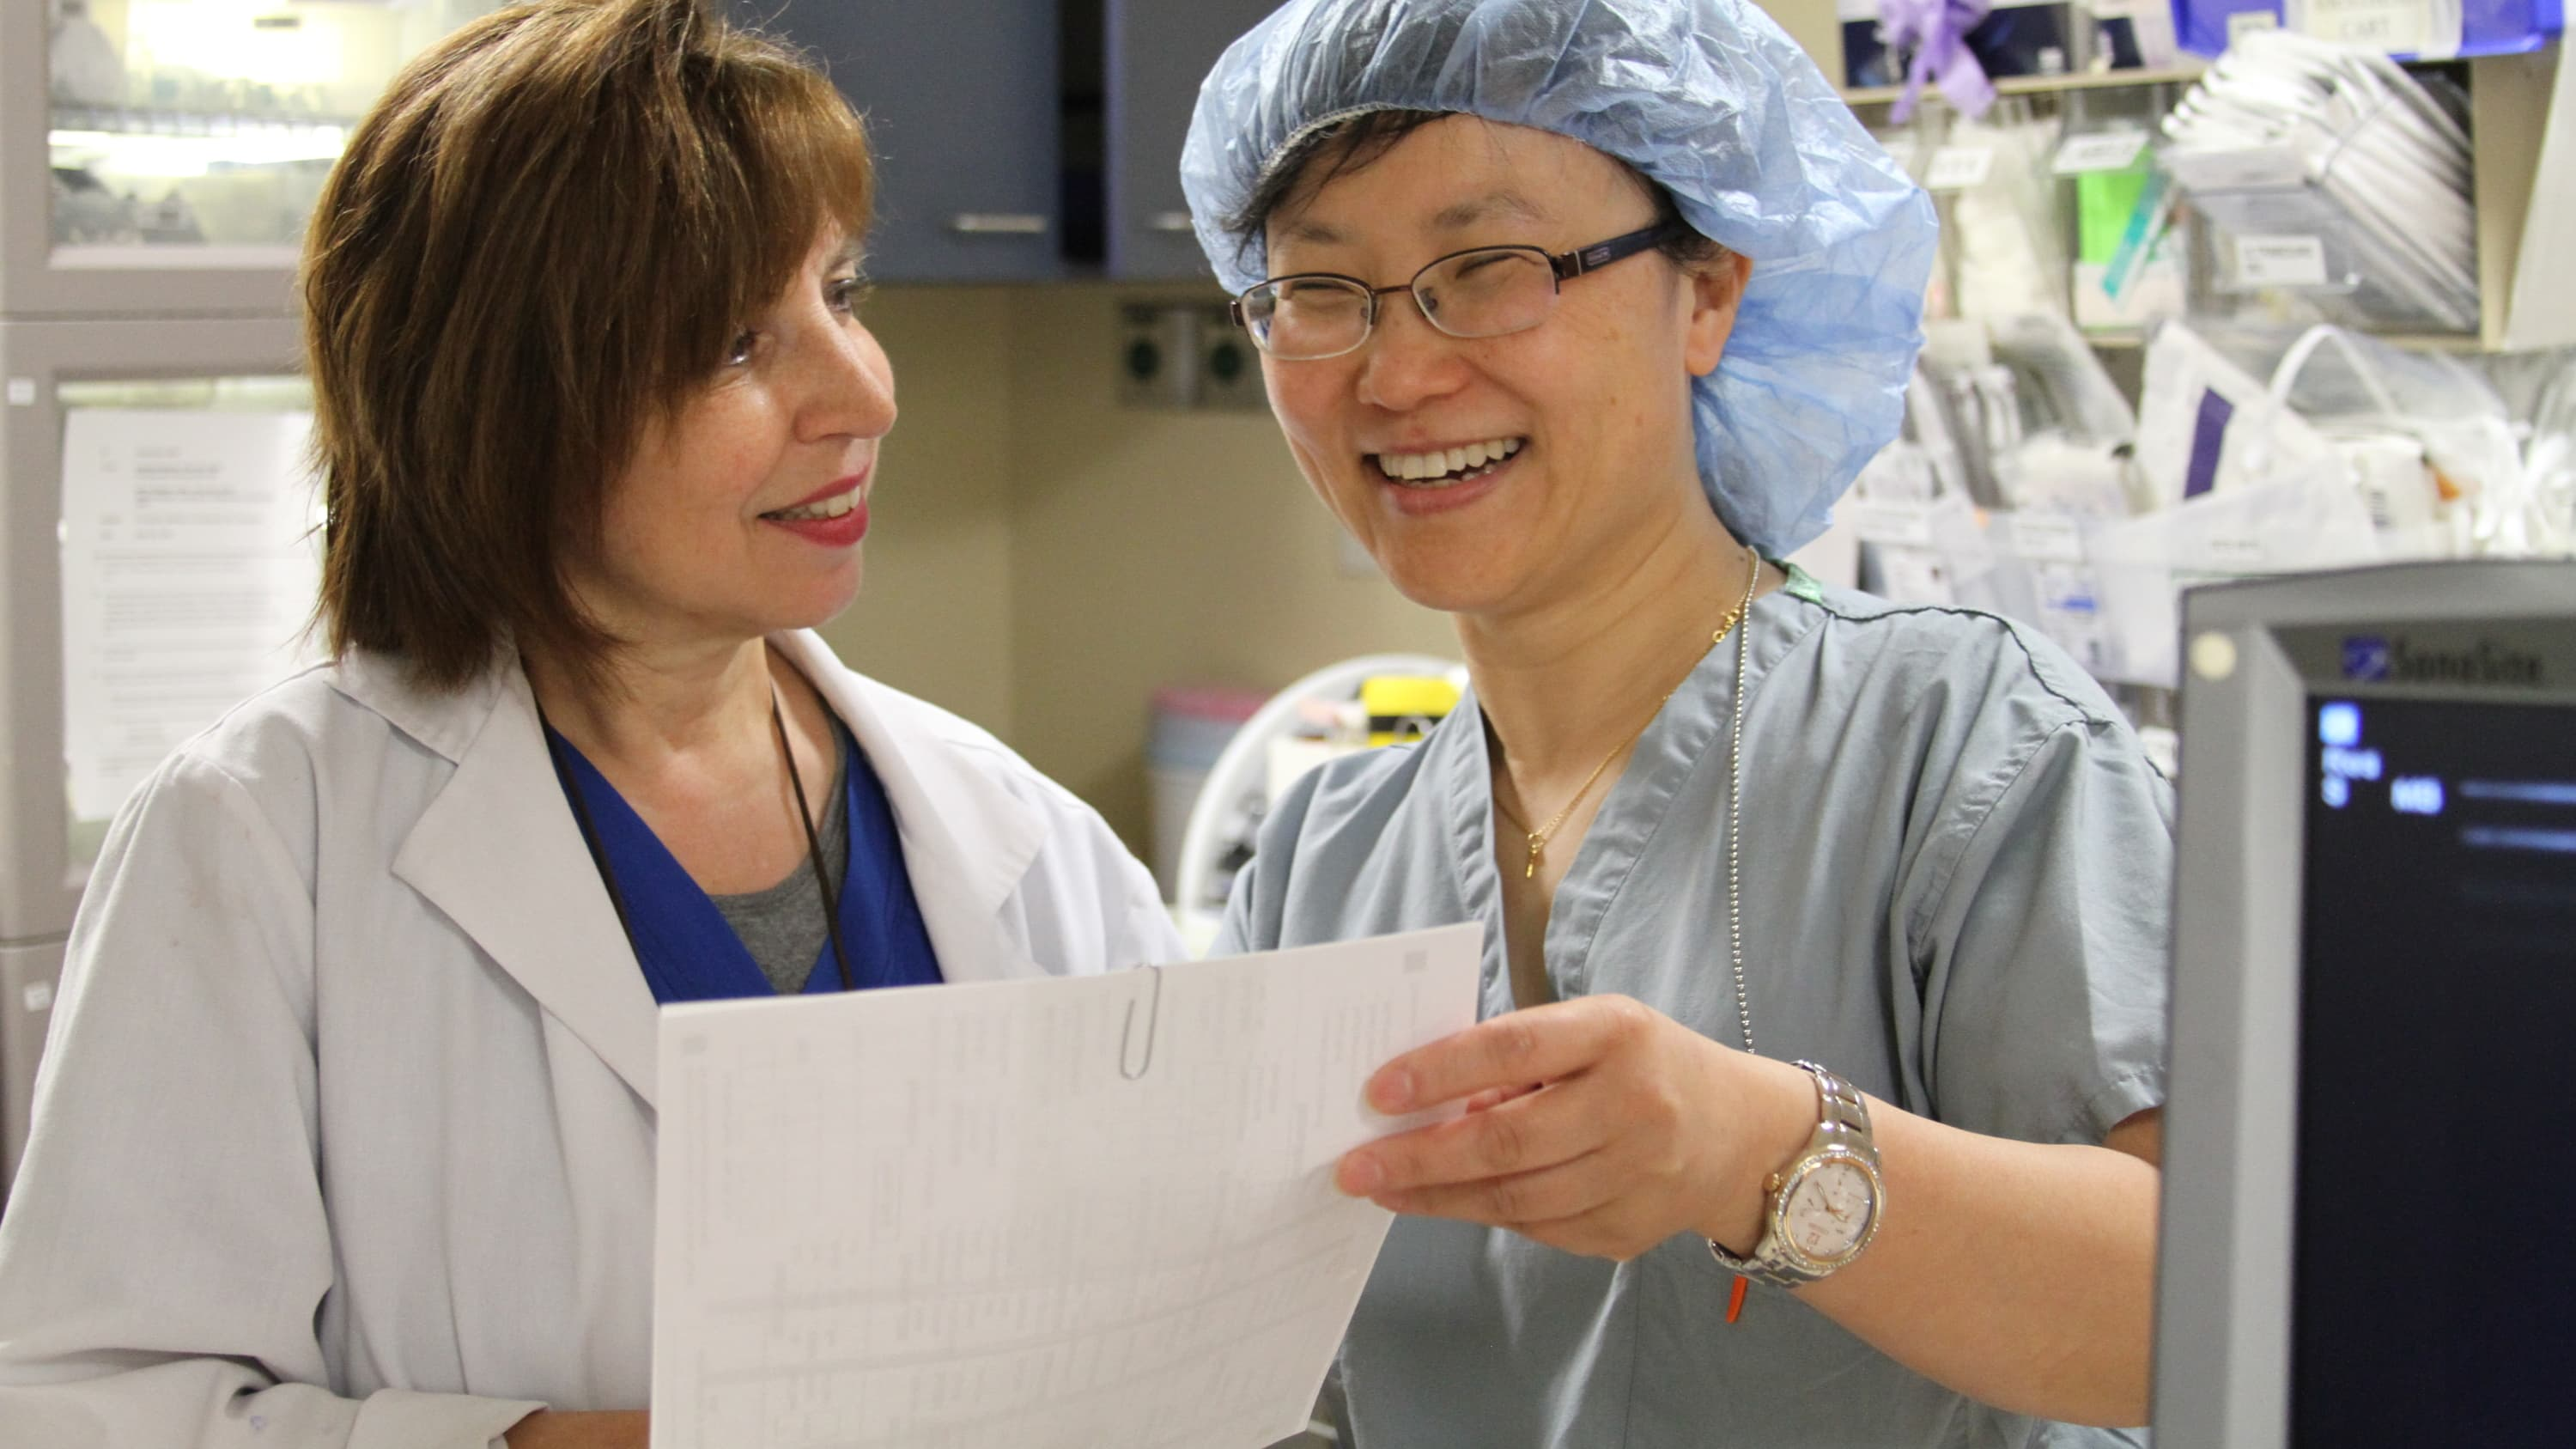 Nerve block nurse Lisa Mastrangello (on the left) with Jinlei Li, MD, an anesthesiologist, discussing a nerve block, which is a type of regional anesthesia.